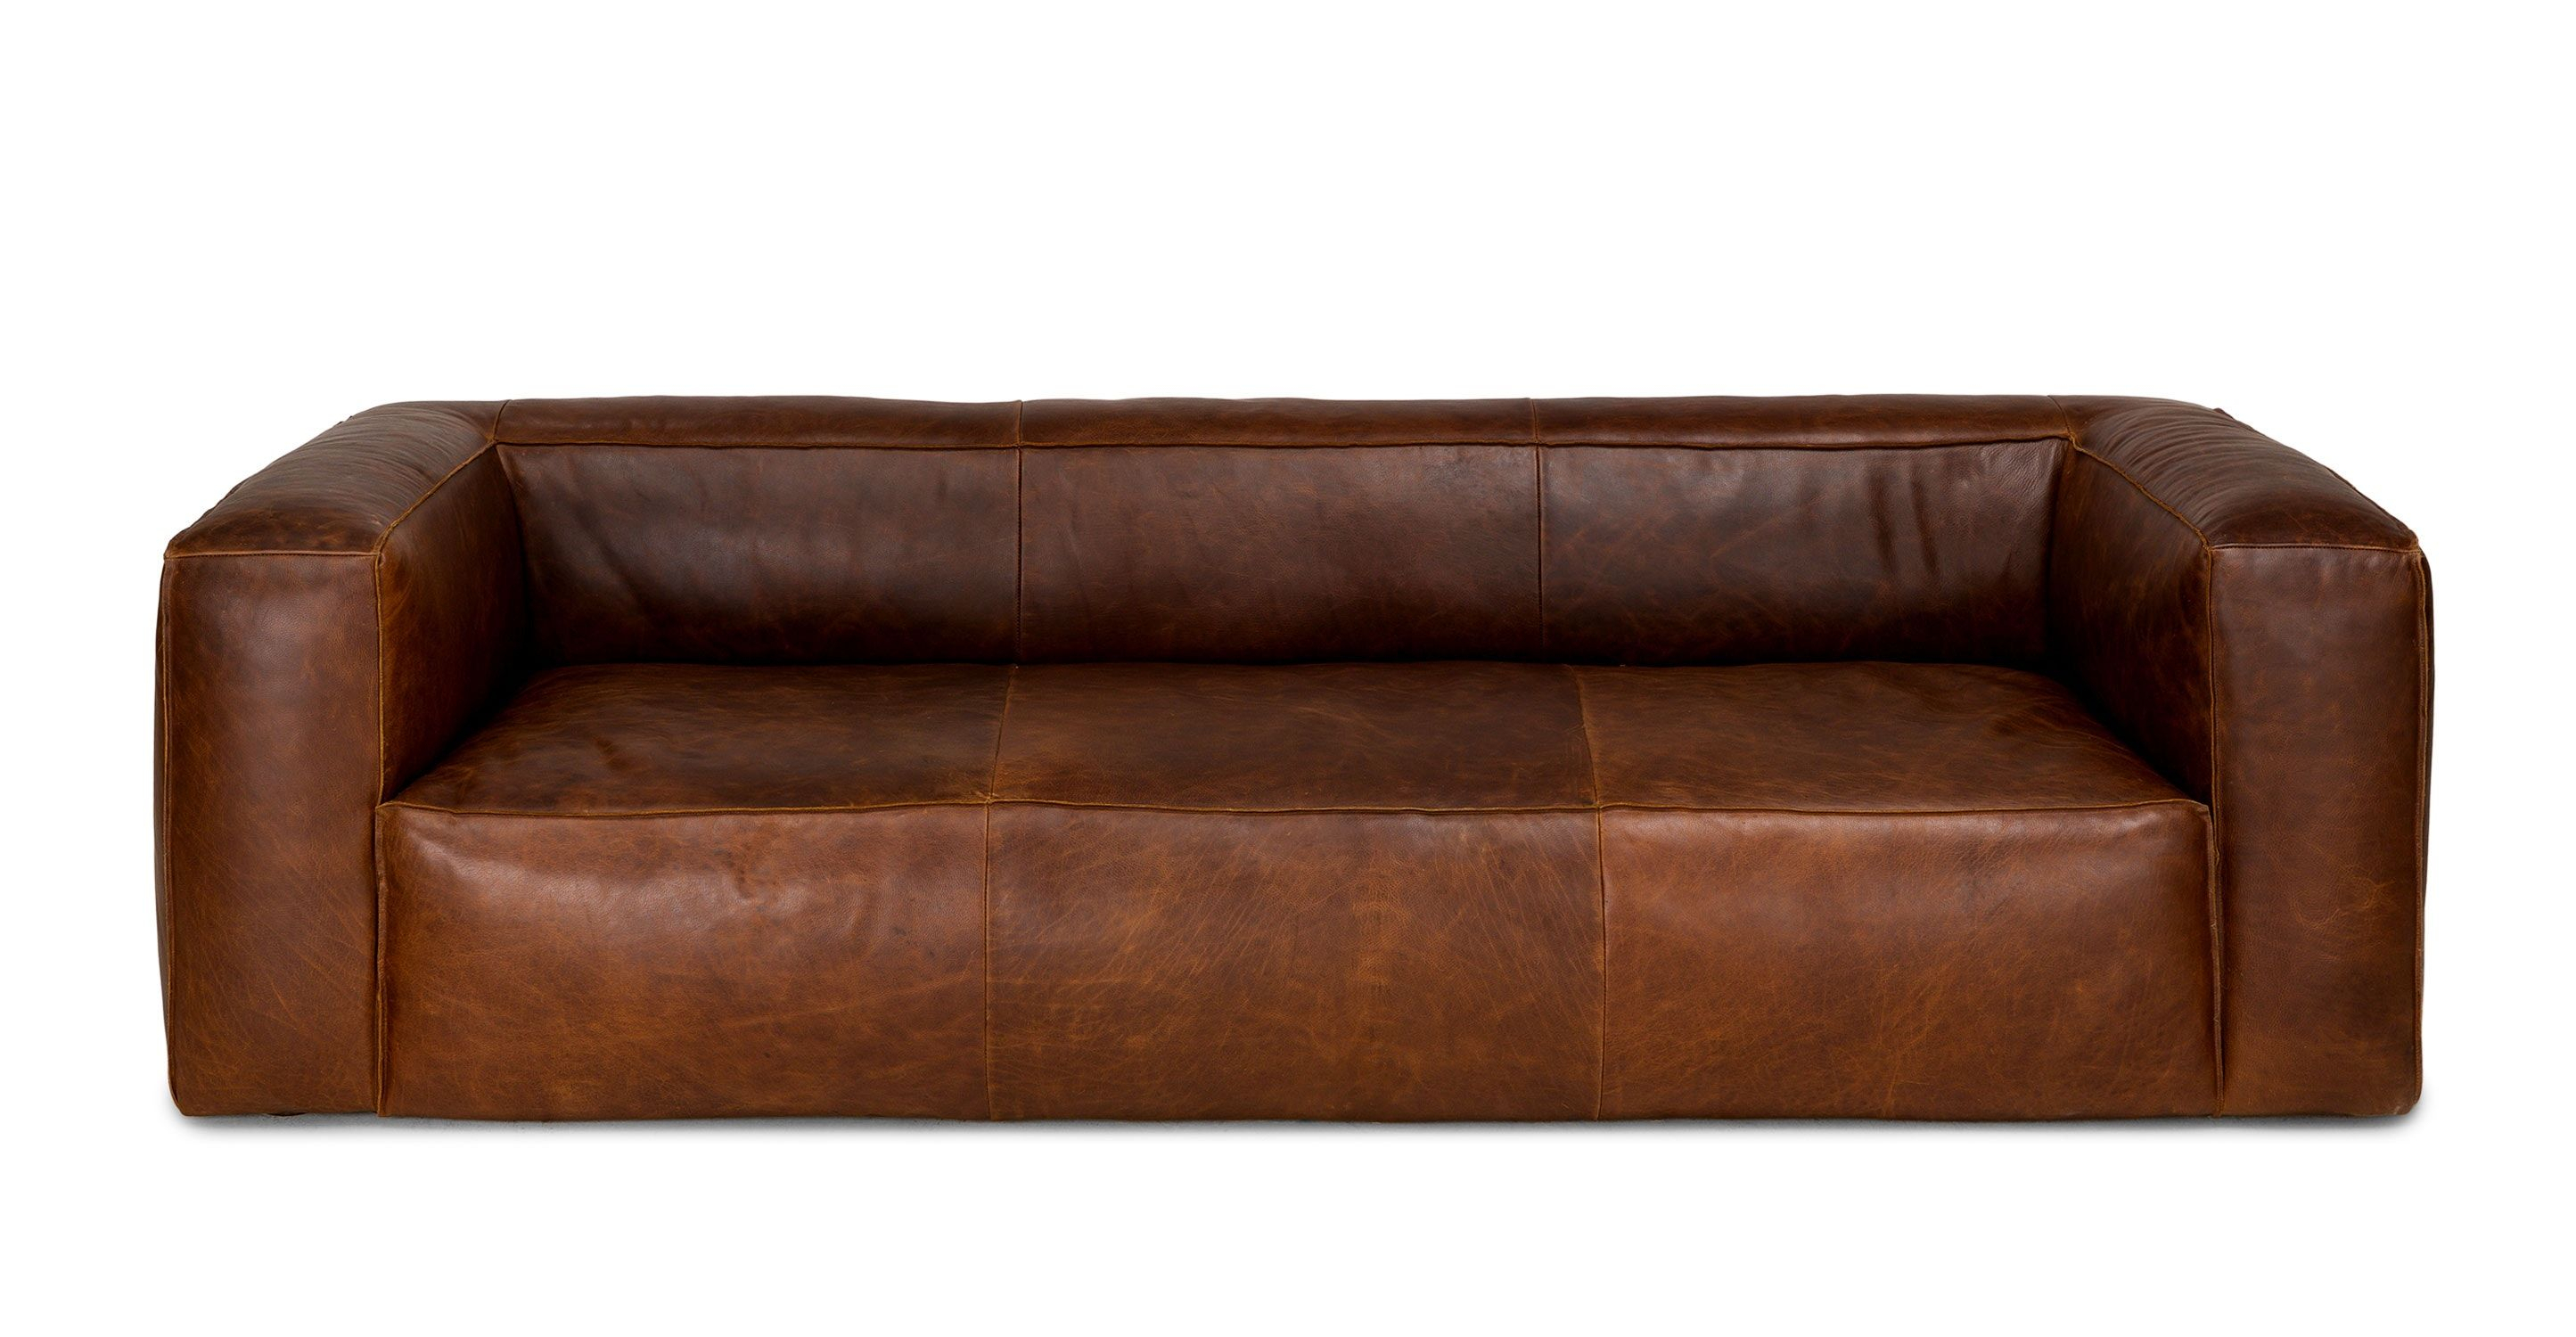 Brown Sofa, Italian Leather, Upholstered | Article Cigar Modern Pertaining To Caressa Leather Dove Grey Sofa Chairs (Image 3 of 25)